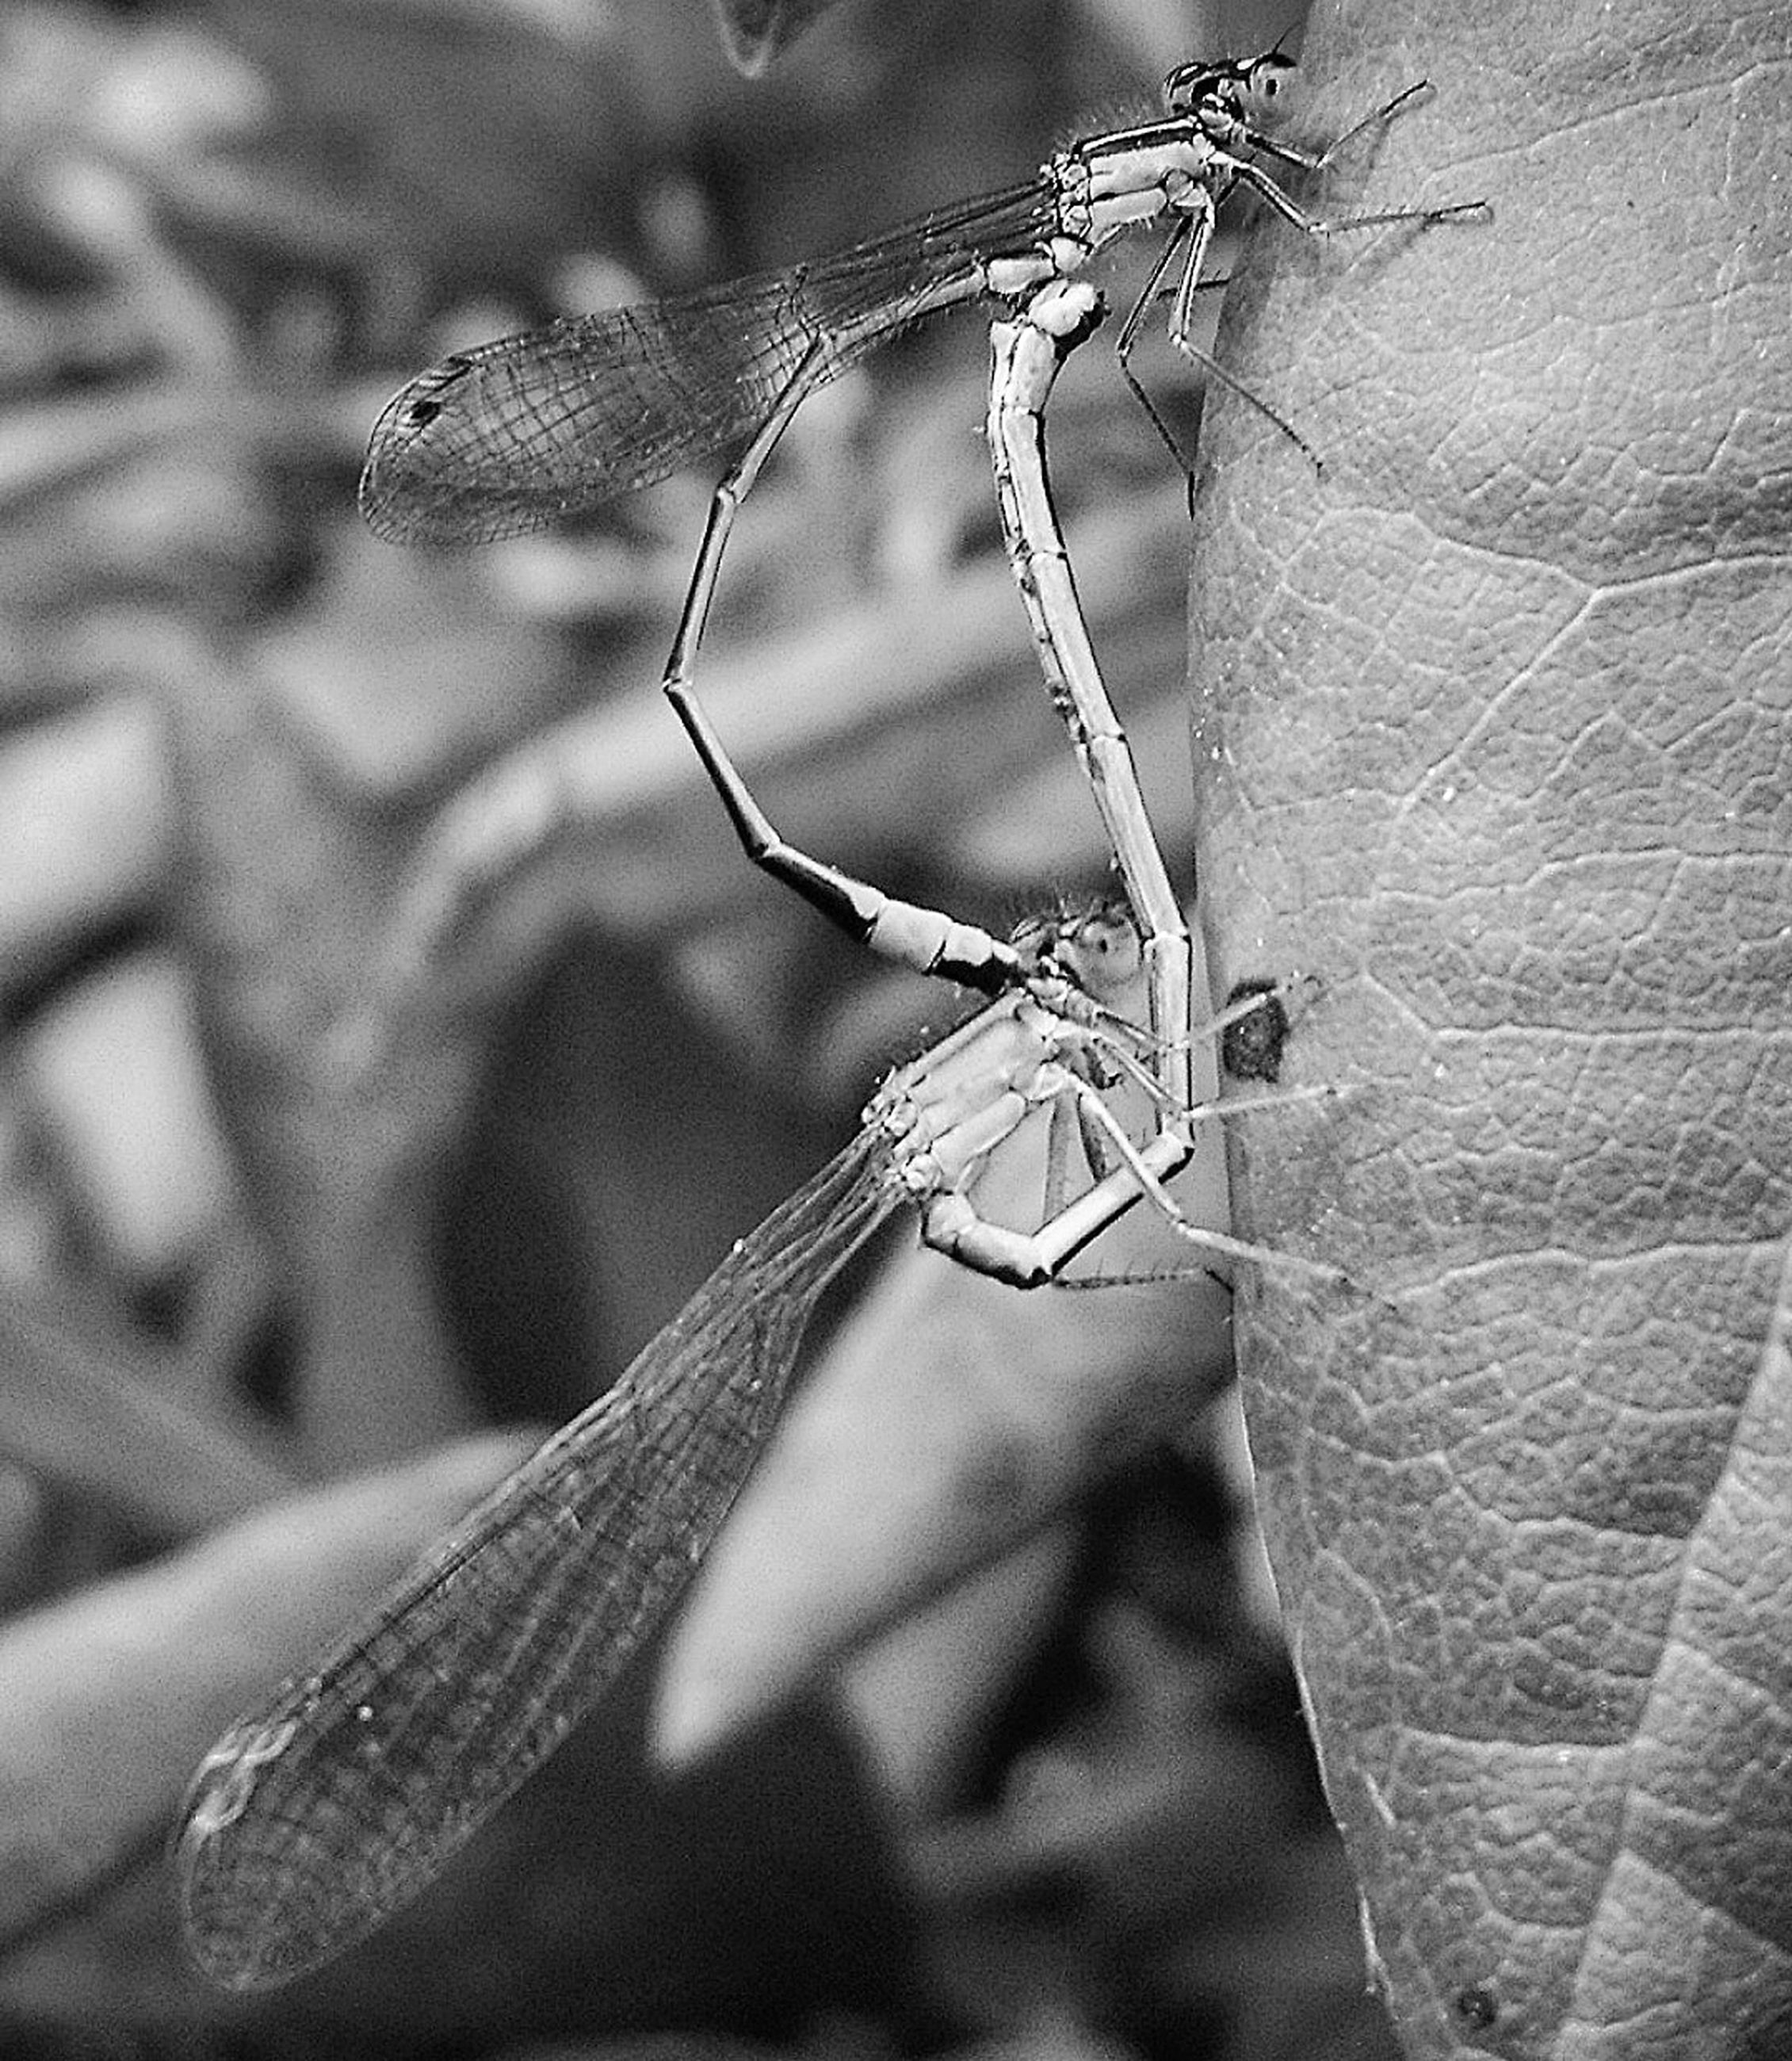 animals in the wild, close-up, insect, animal wildlife, focus on foreground, invertebrate, one animal, animal themes, animal, day, no people, plant, nature, plant part, leaf, outdoors, selective focus, praying mantis, animal body part, beauty in nature, tangled